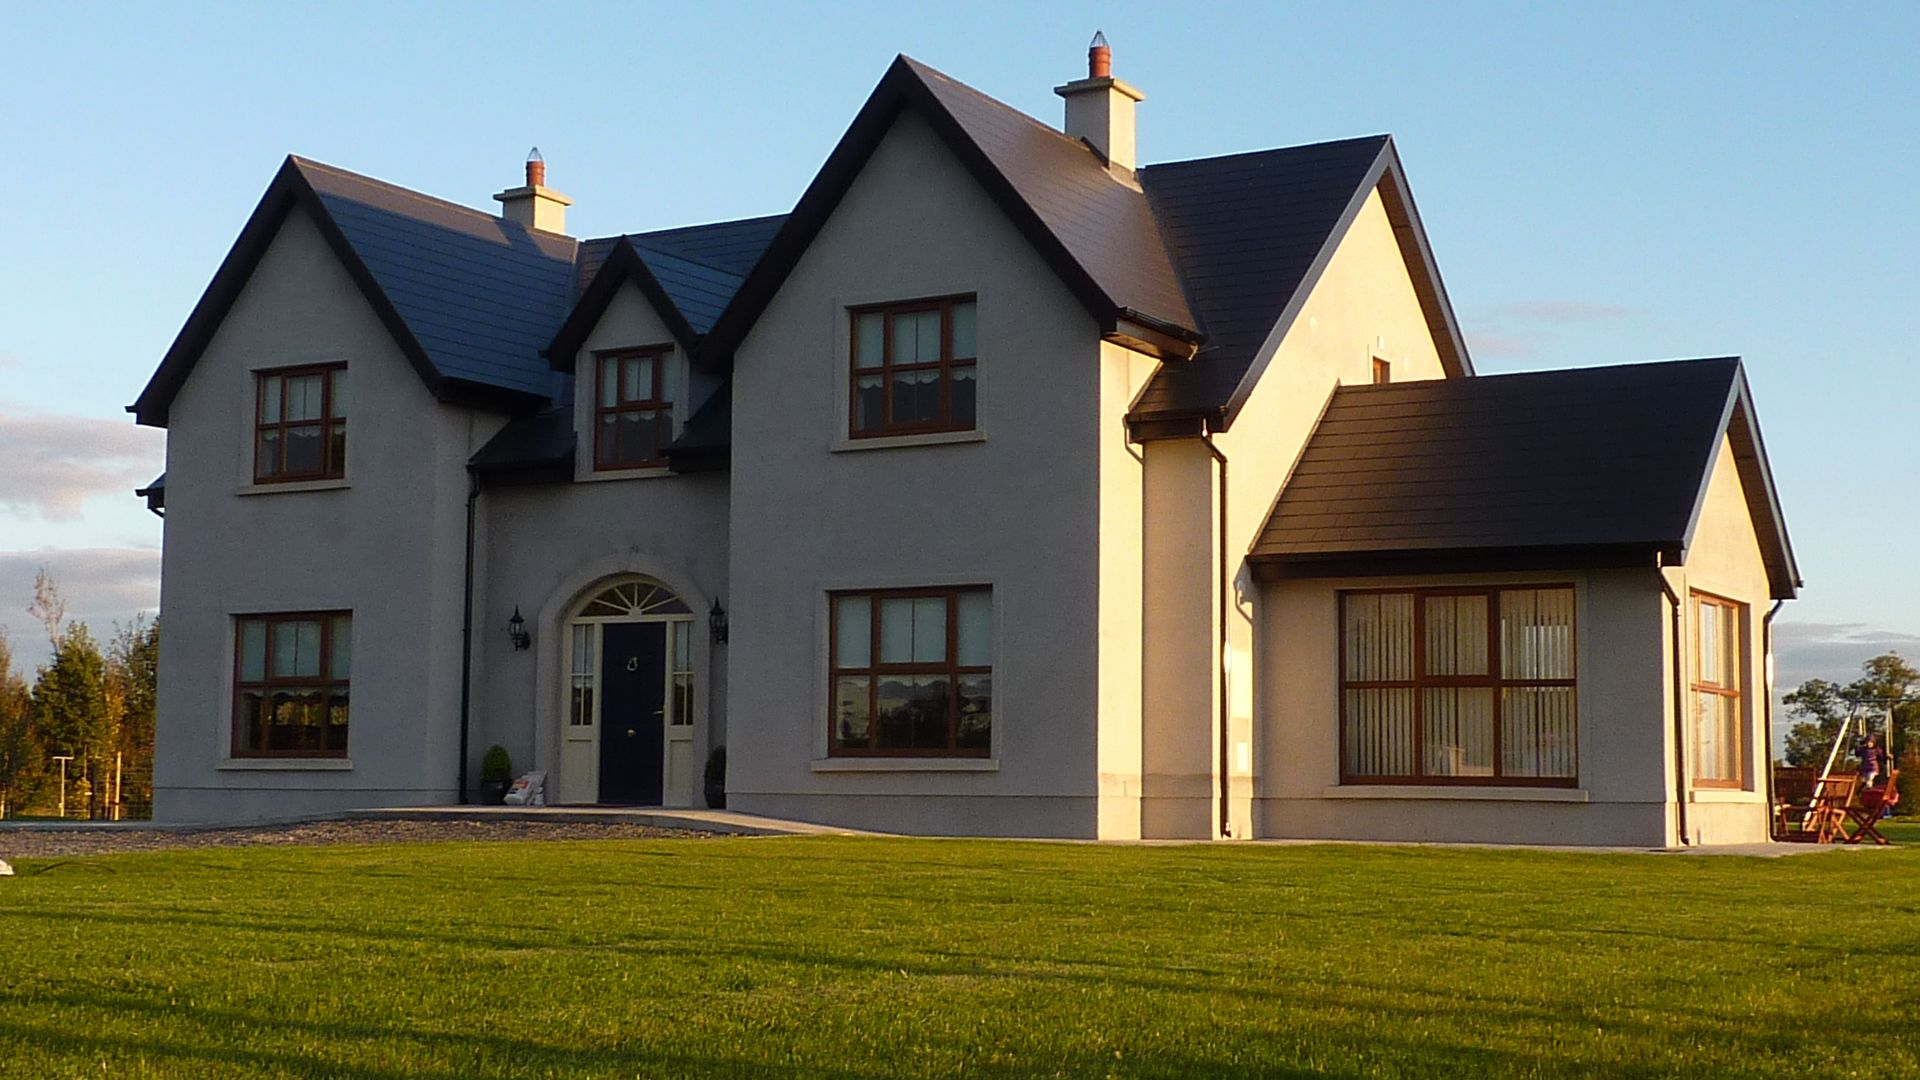 Pin By Keala Lewis On Exterior In 2020 House Designs Ireland Irish House Plans House Designs Exterior